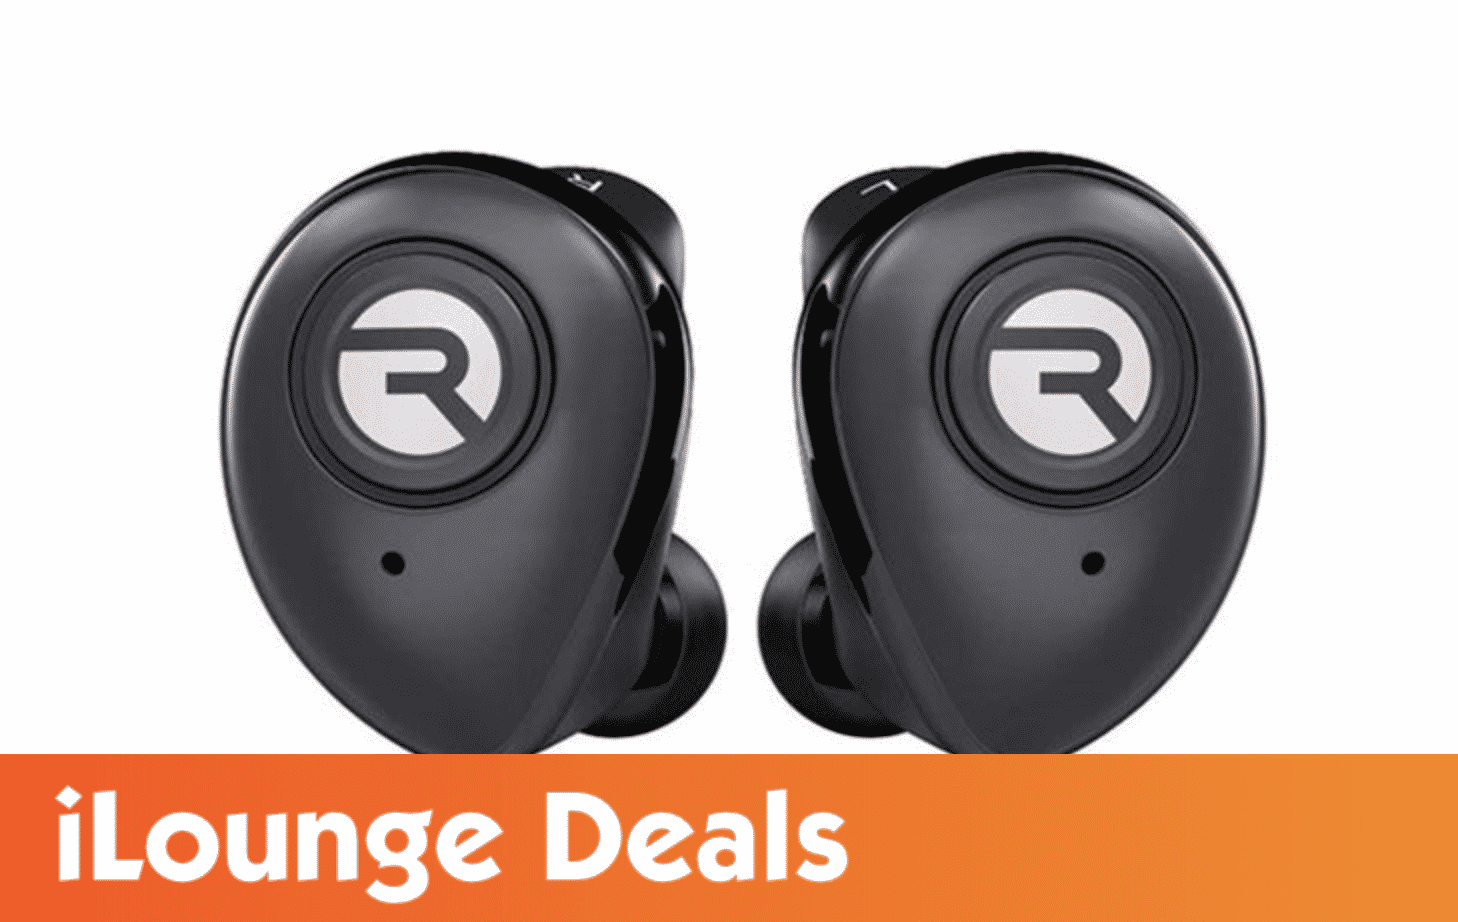 Raycon E50 Wireless 5.0 Bluetooth Earbuds are 45% Off